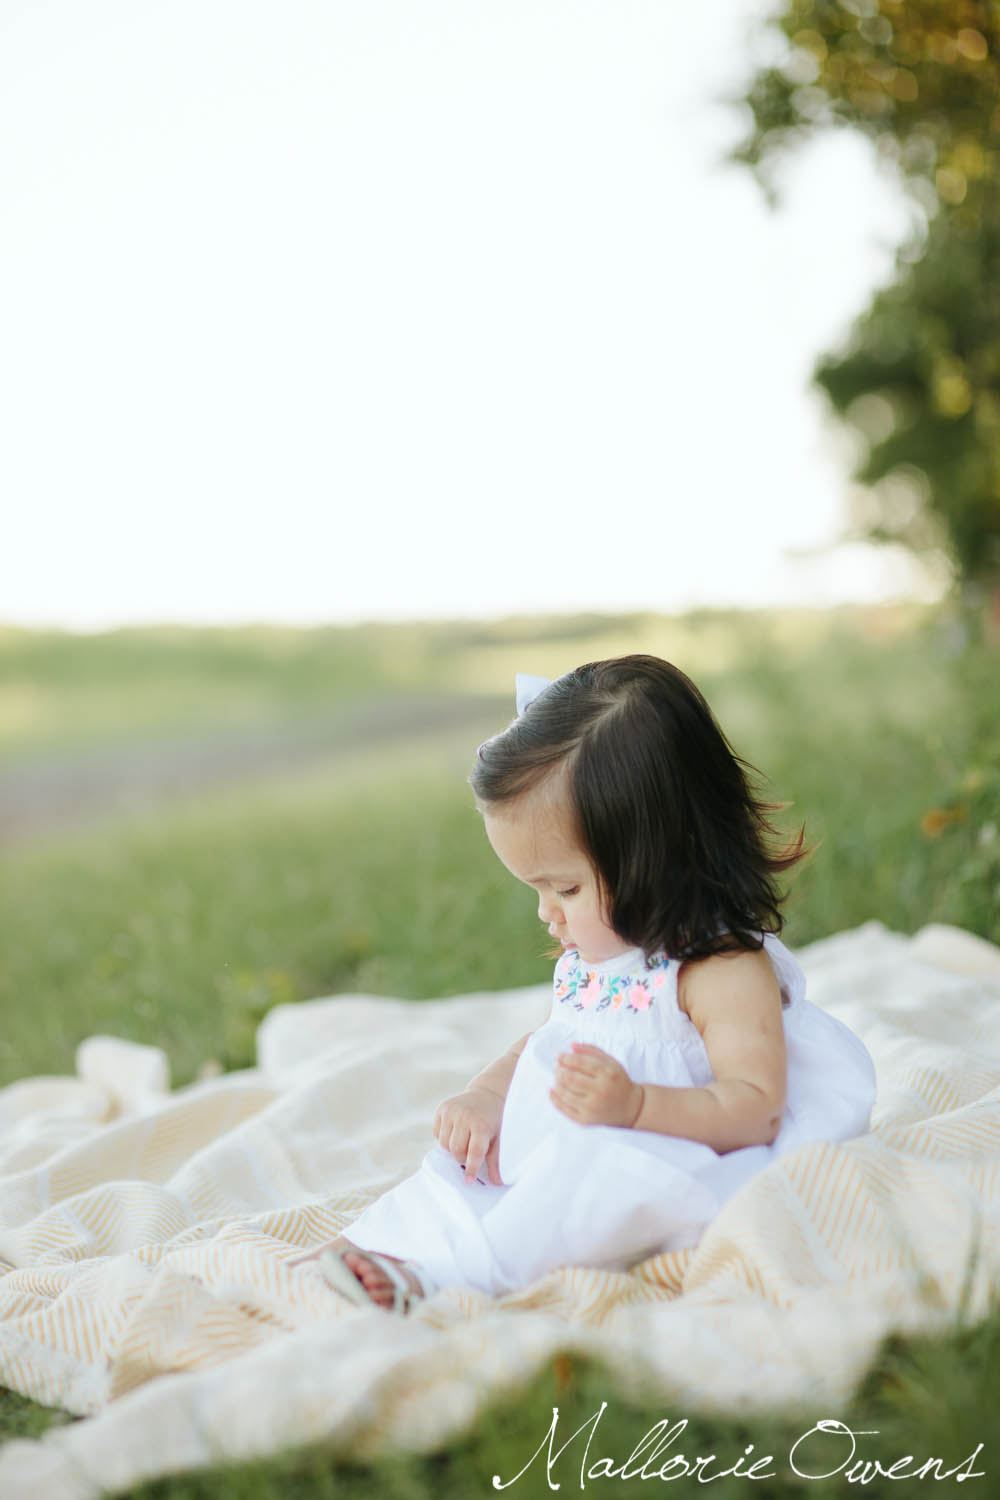 Children Portraits in Austin, Texas | MALLORIE OWENS